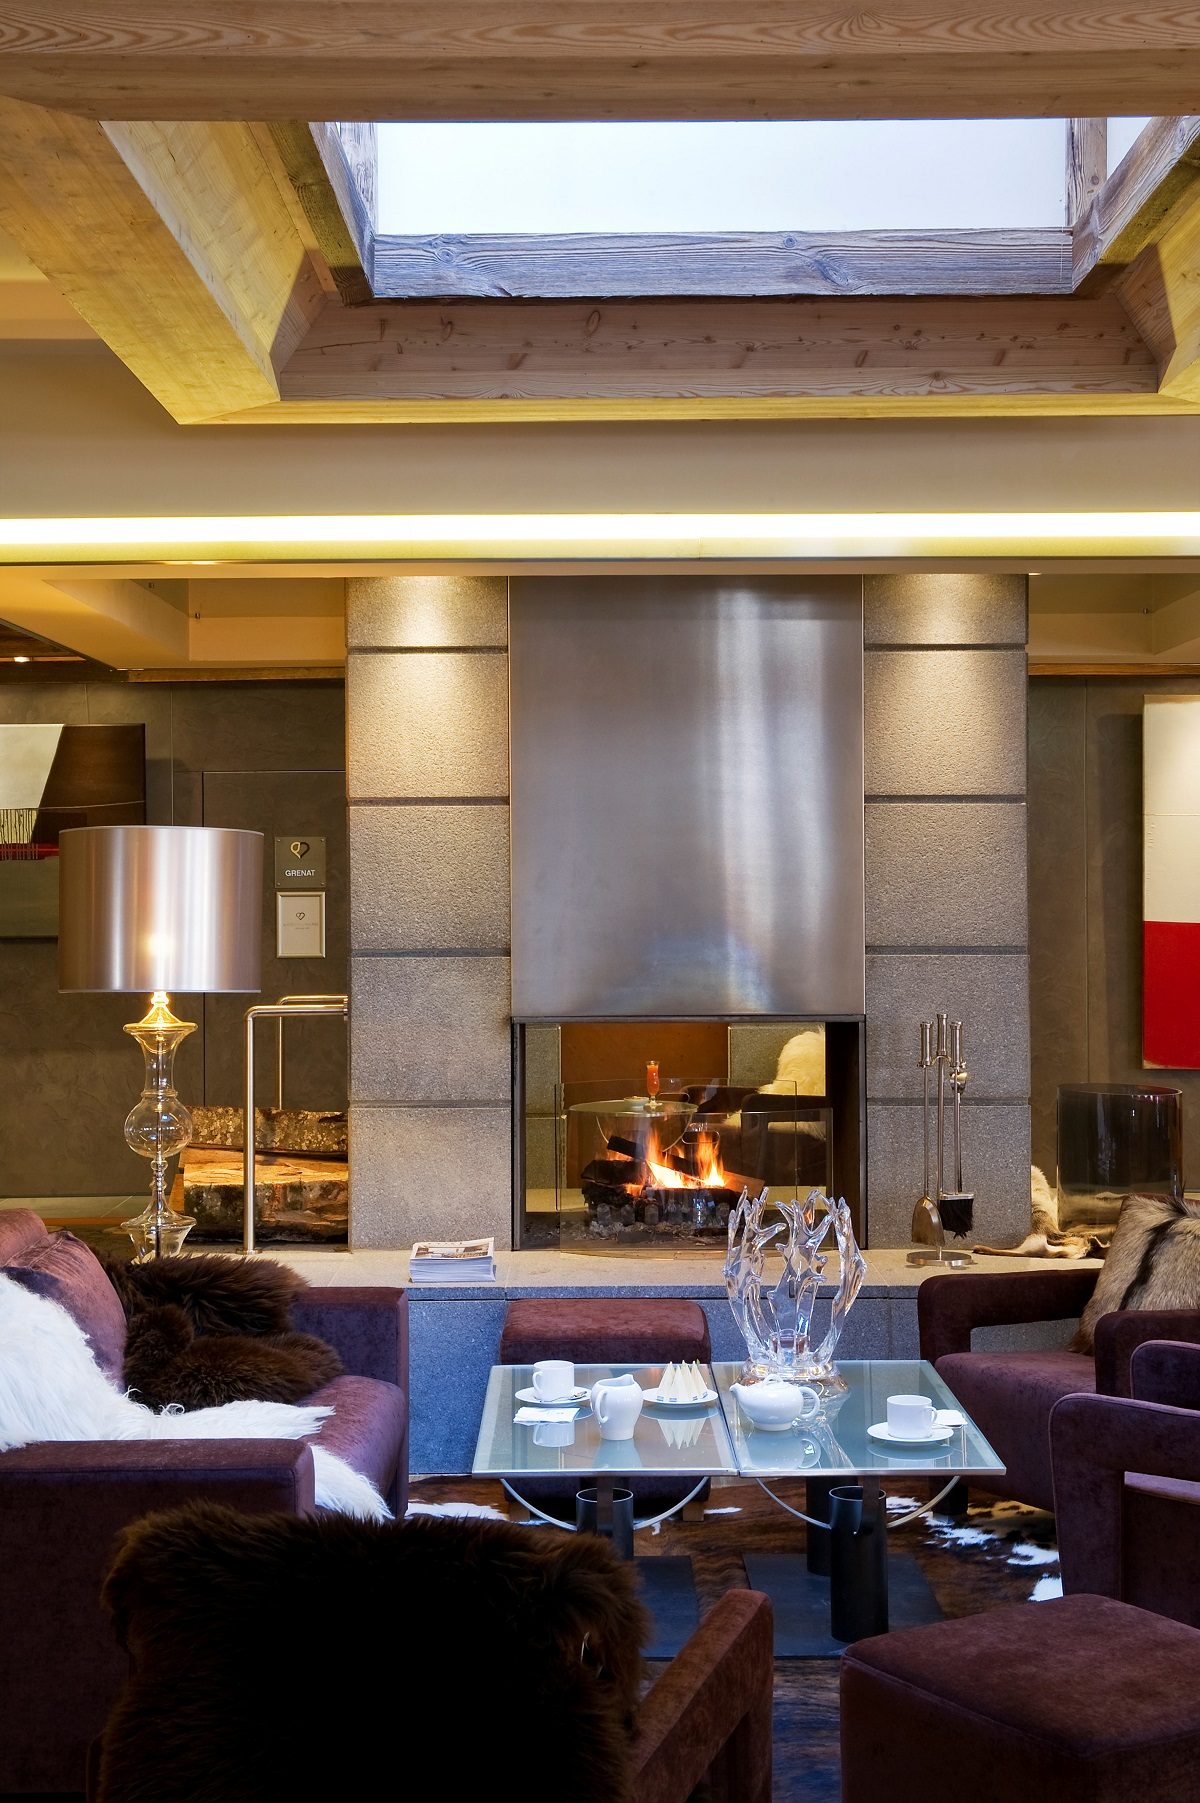 Au Coeur du Village Hotel and Spa Fireplace - La Clusaz, France